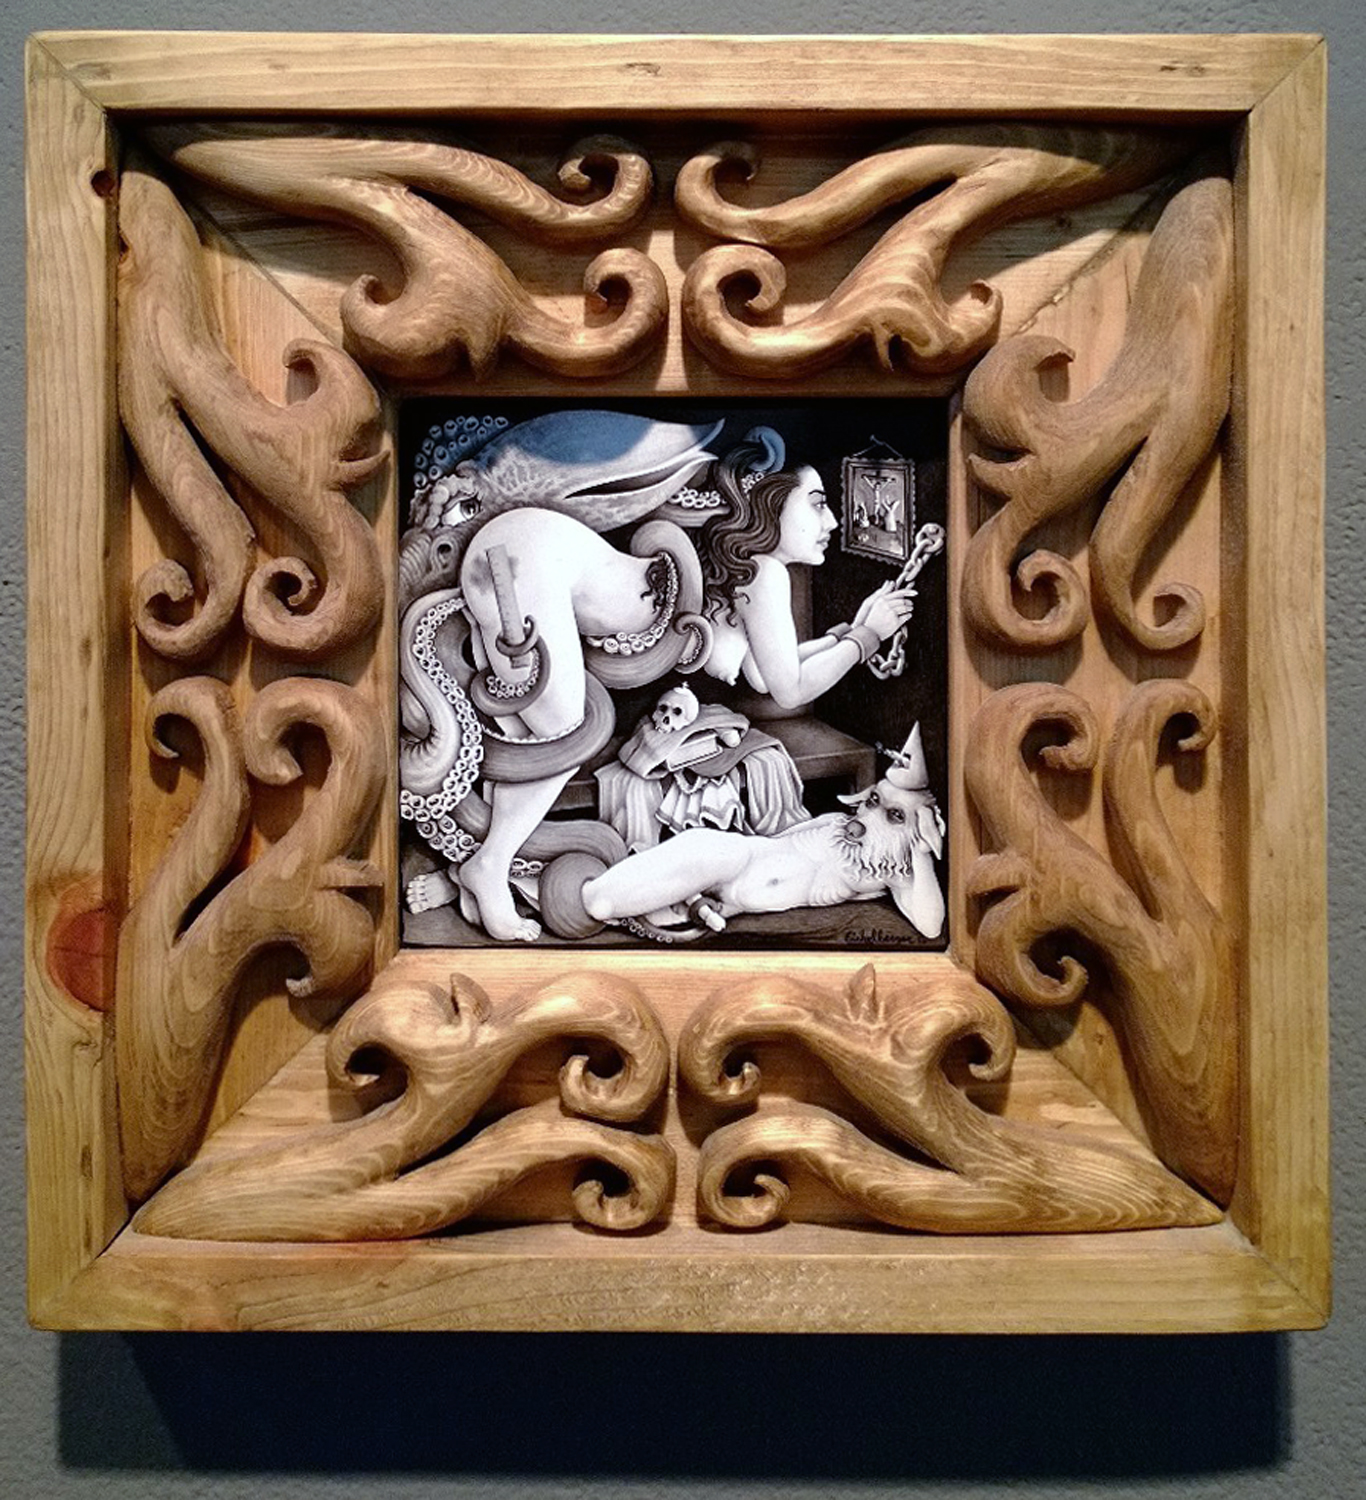 Brushed ink & pyrography, 6 x 6 in. (in 12.25 x 12.25 in. hand carved frame) $650.00 Sold